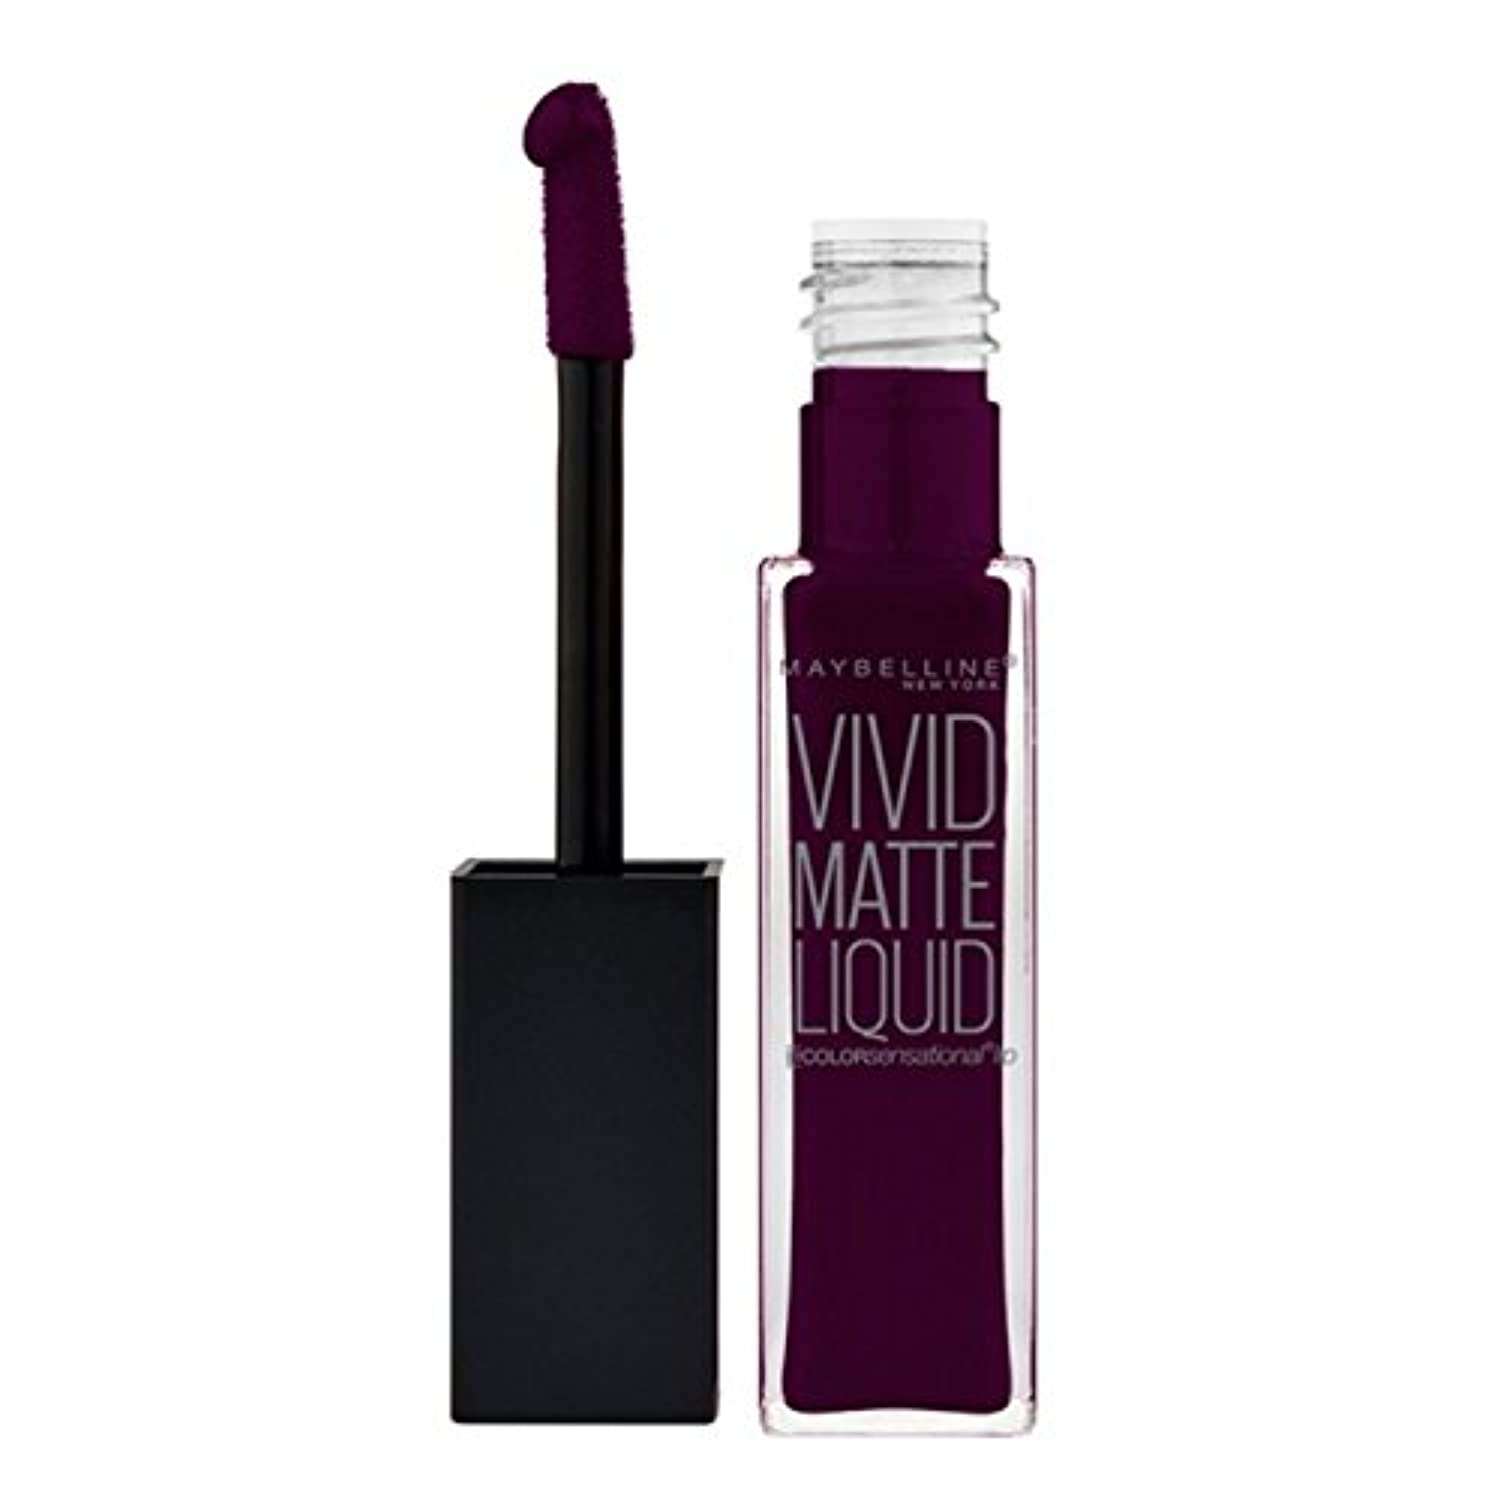 (6 Pack) MAYBELLINE Vivid Matte Liquid Possessed Plum (並行輸入品)